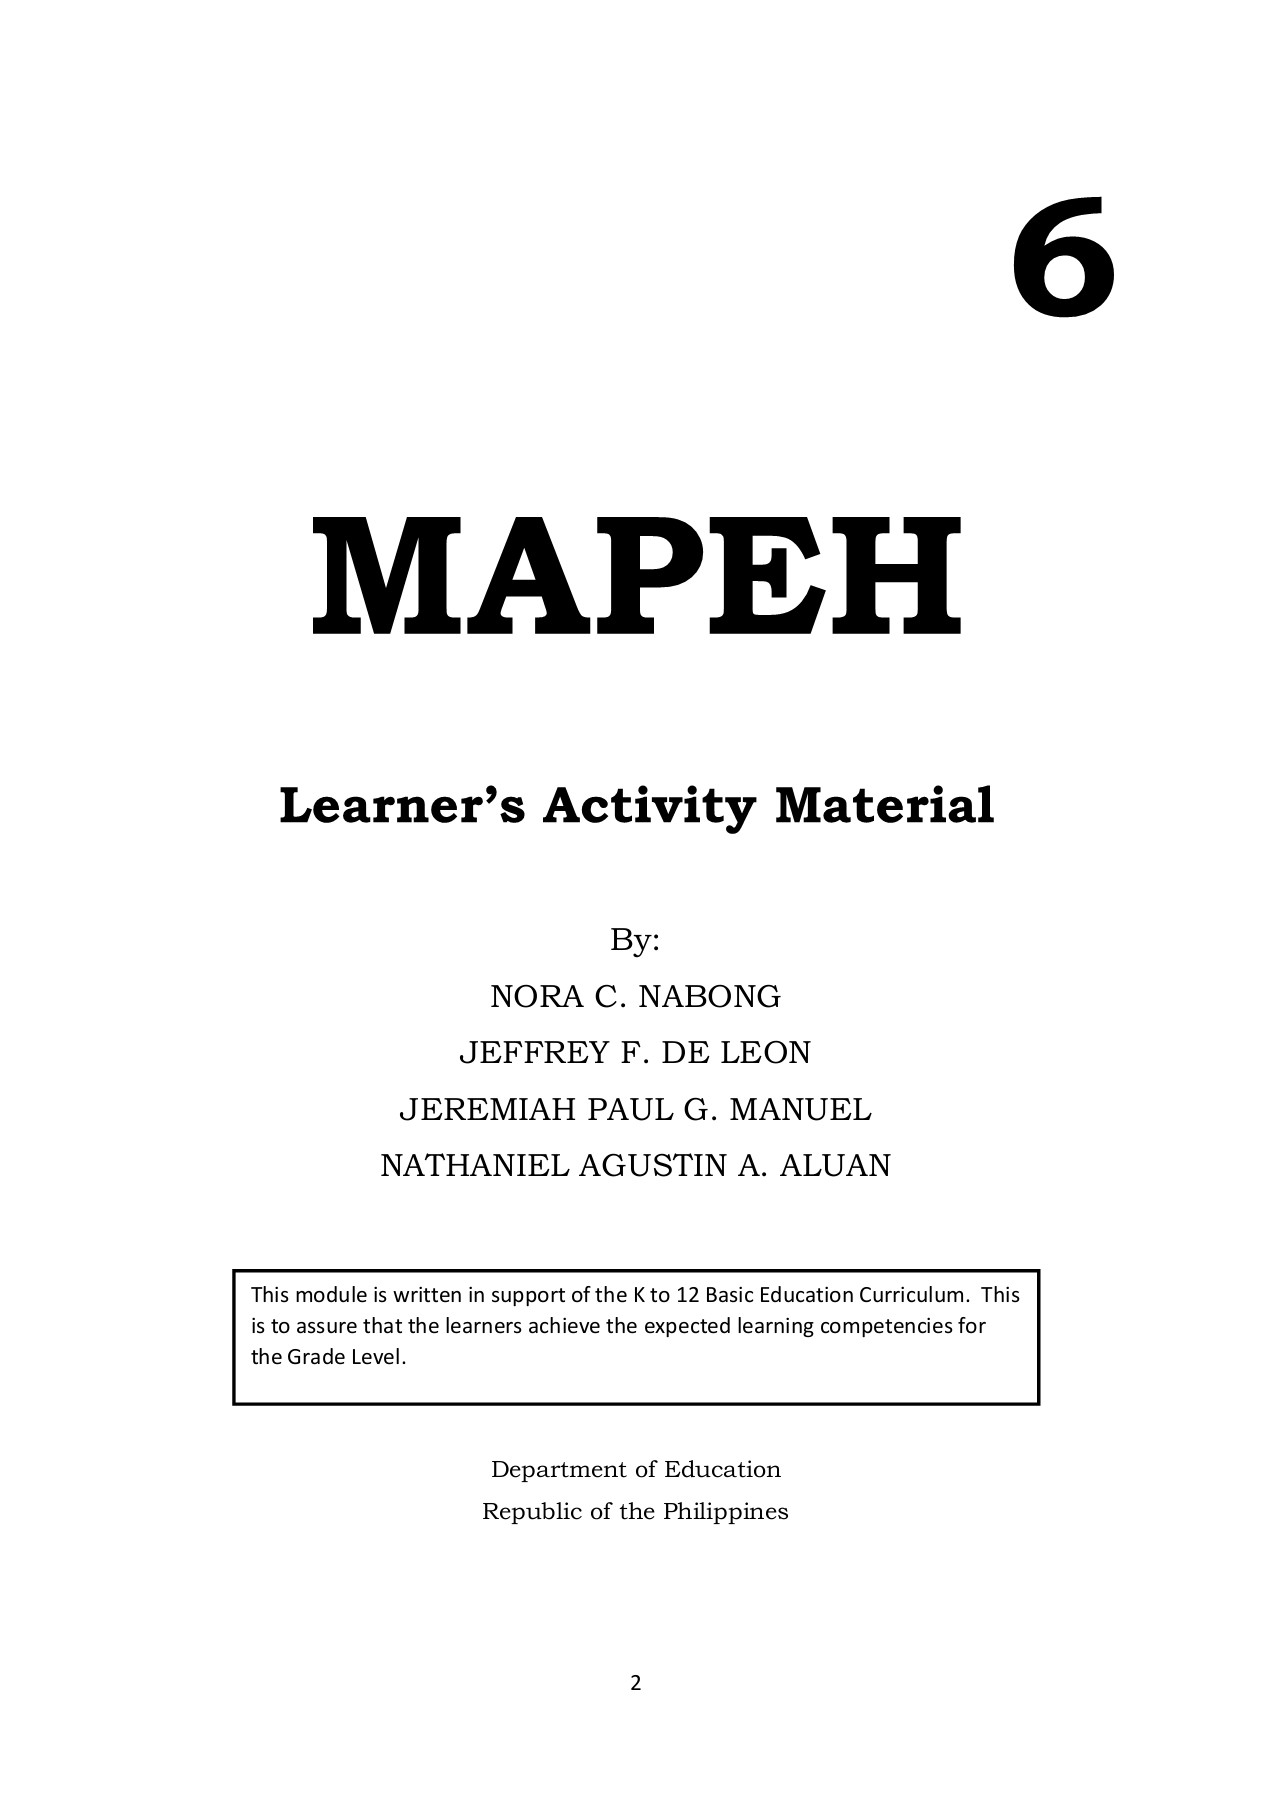 MAPEH-6-WORKSHEETS [ 1800 x 1273 Pixel ]